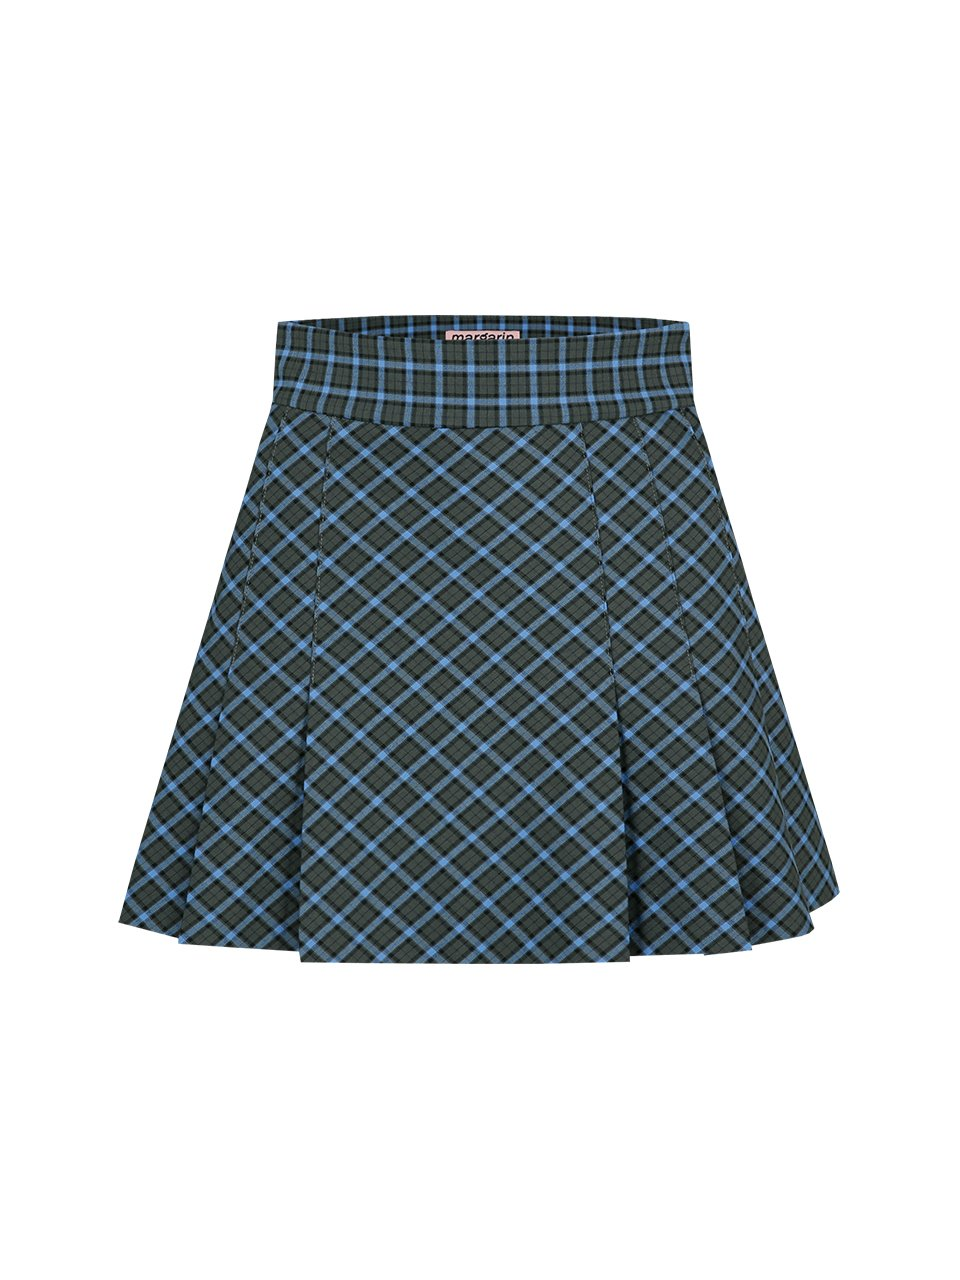 mafing tennis skirt